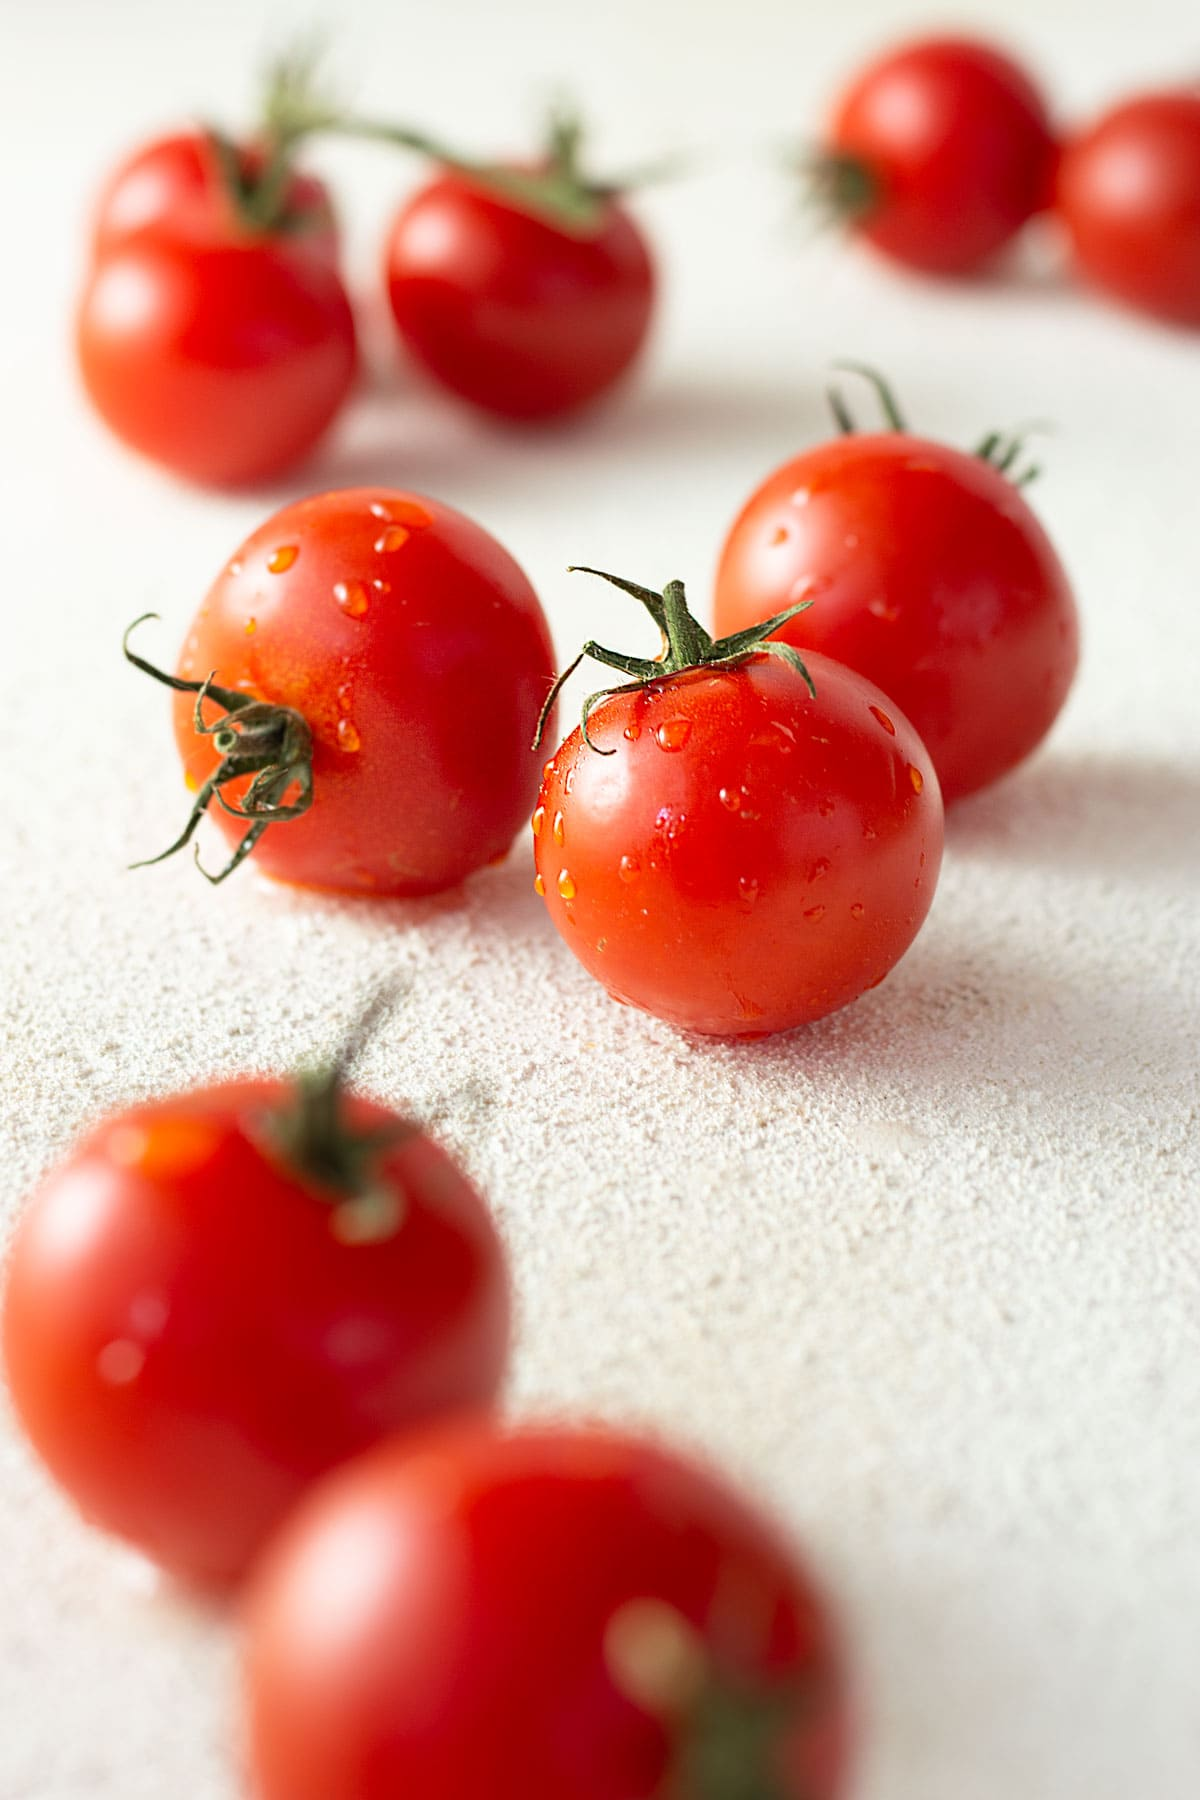 Straight on close up view of a group of compari tomatoes with water droplets on them.